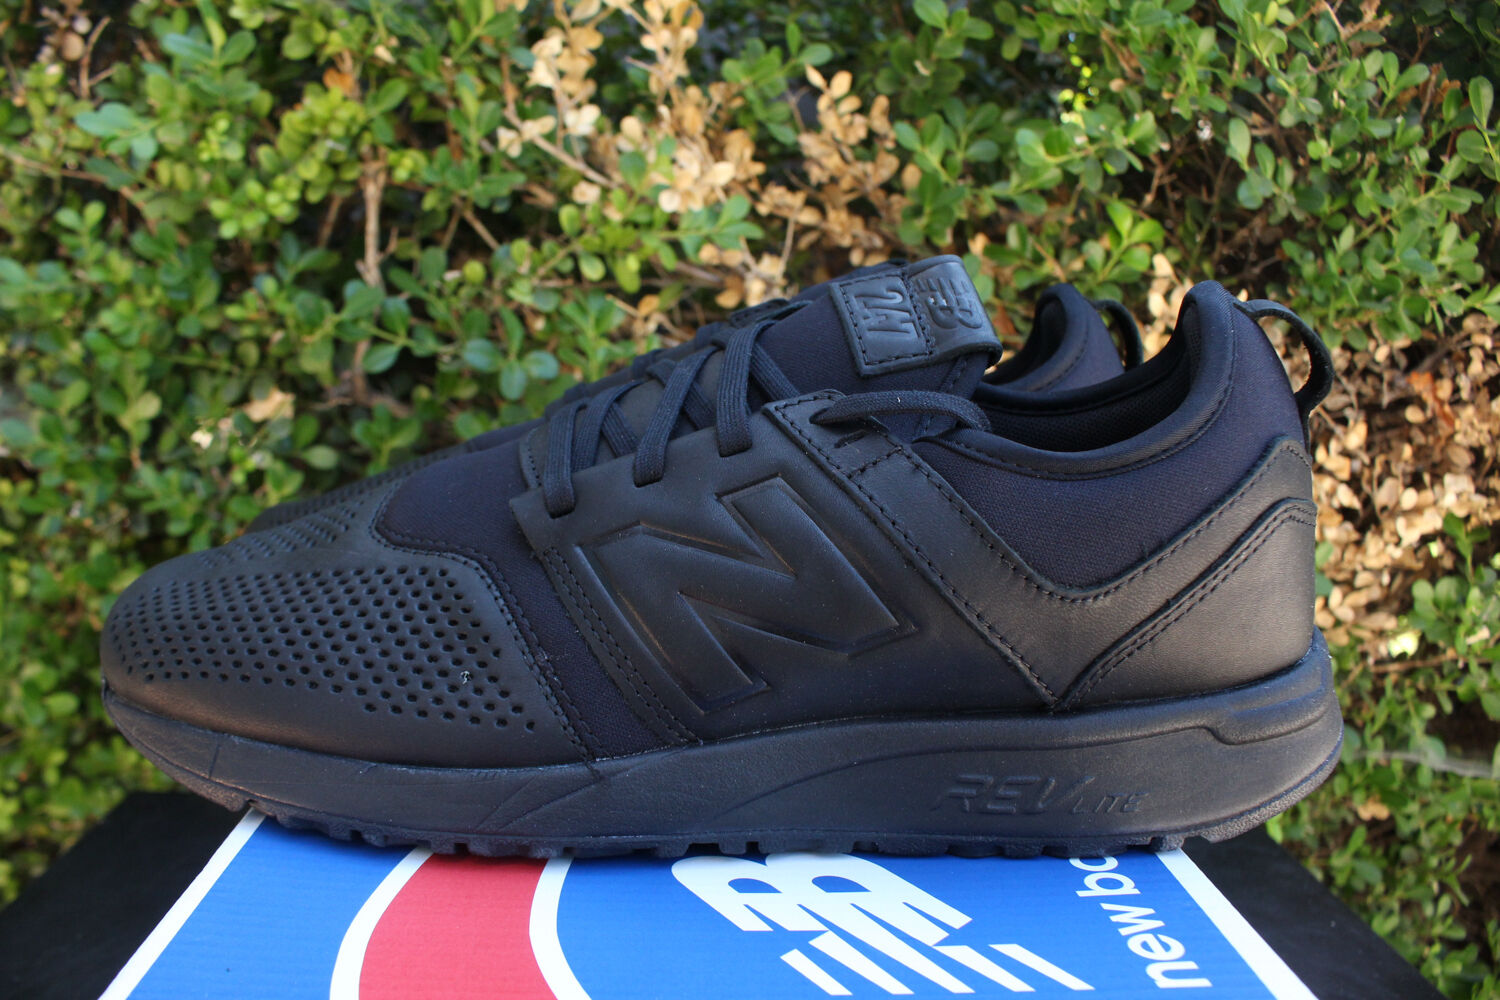 NEW BALANCE 247 SZ 10 TRIPLE BLACK LEATHER RUNNING SHOE MRL247LK